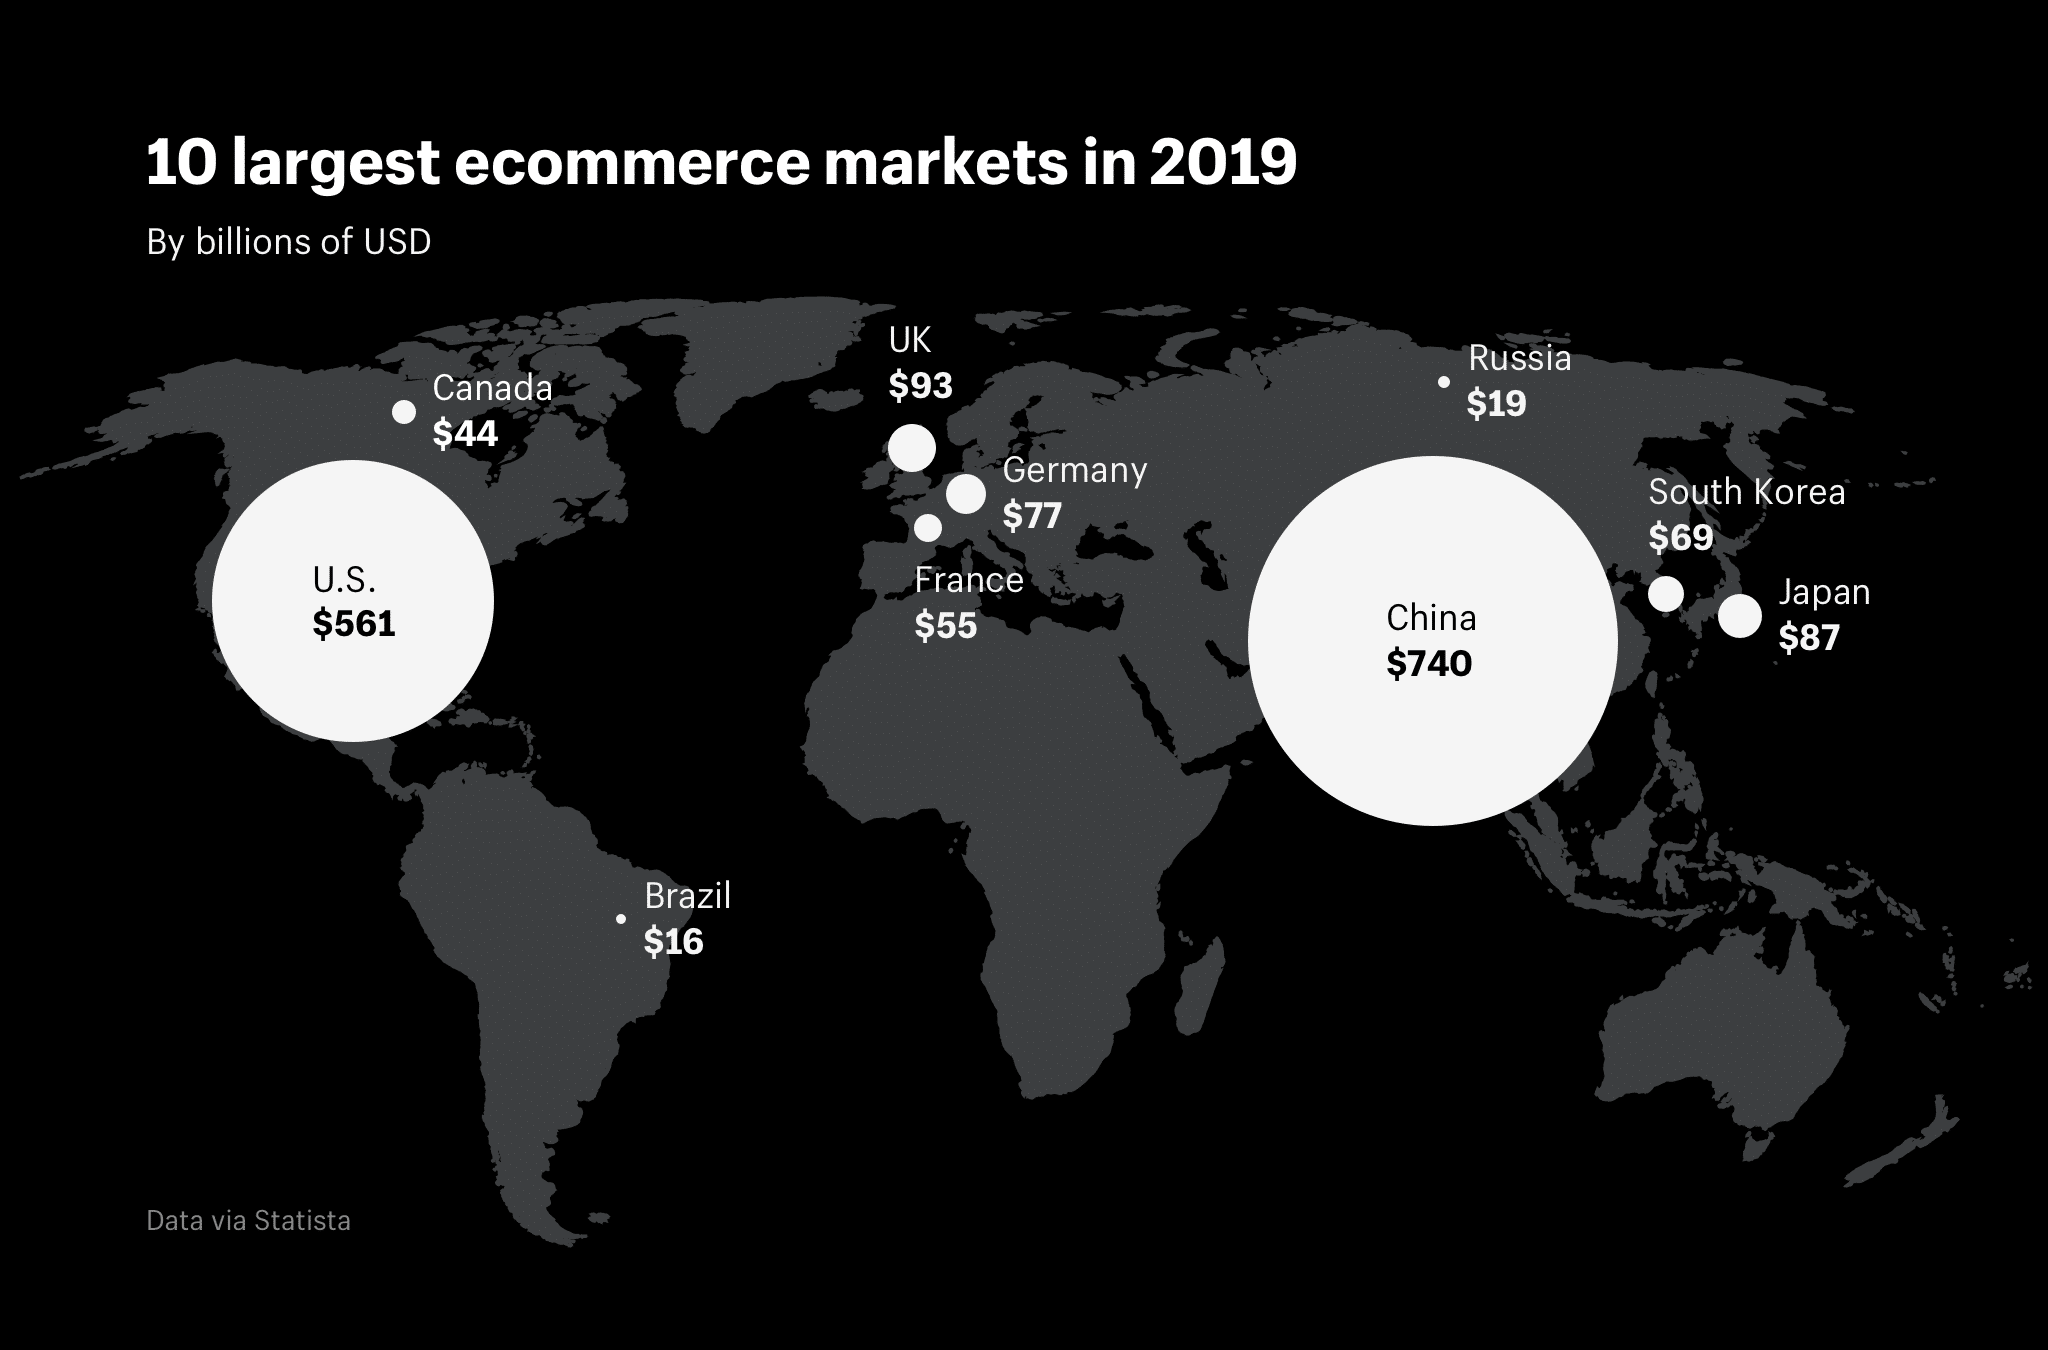 The largest ecommerce markets in the world